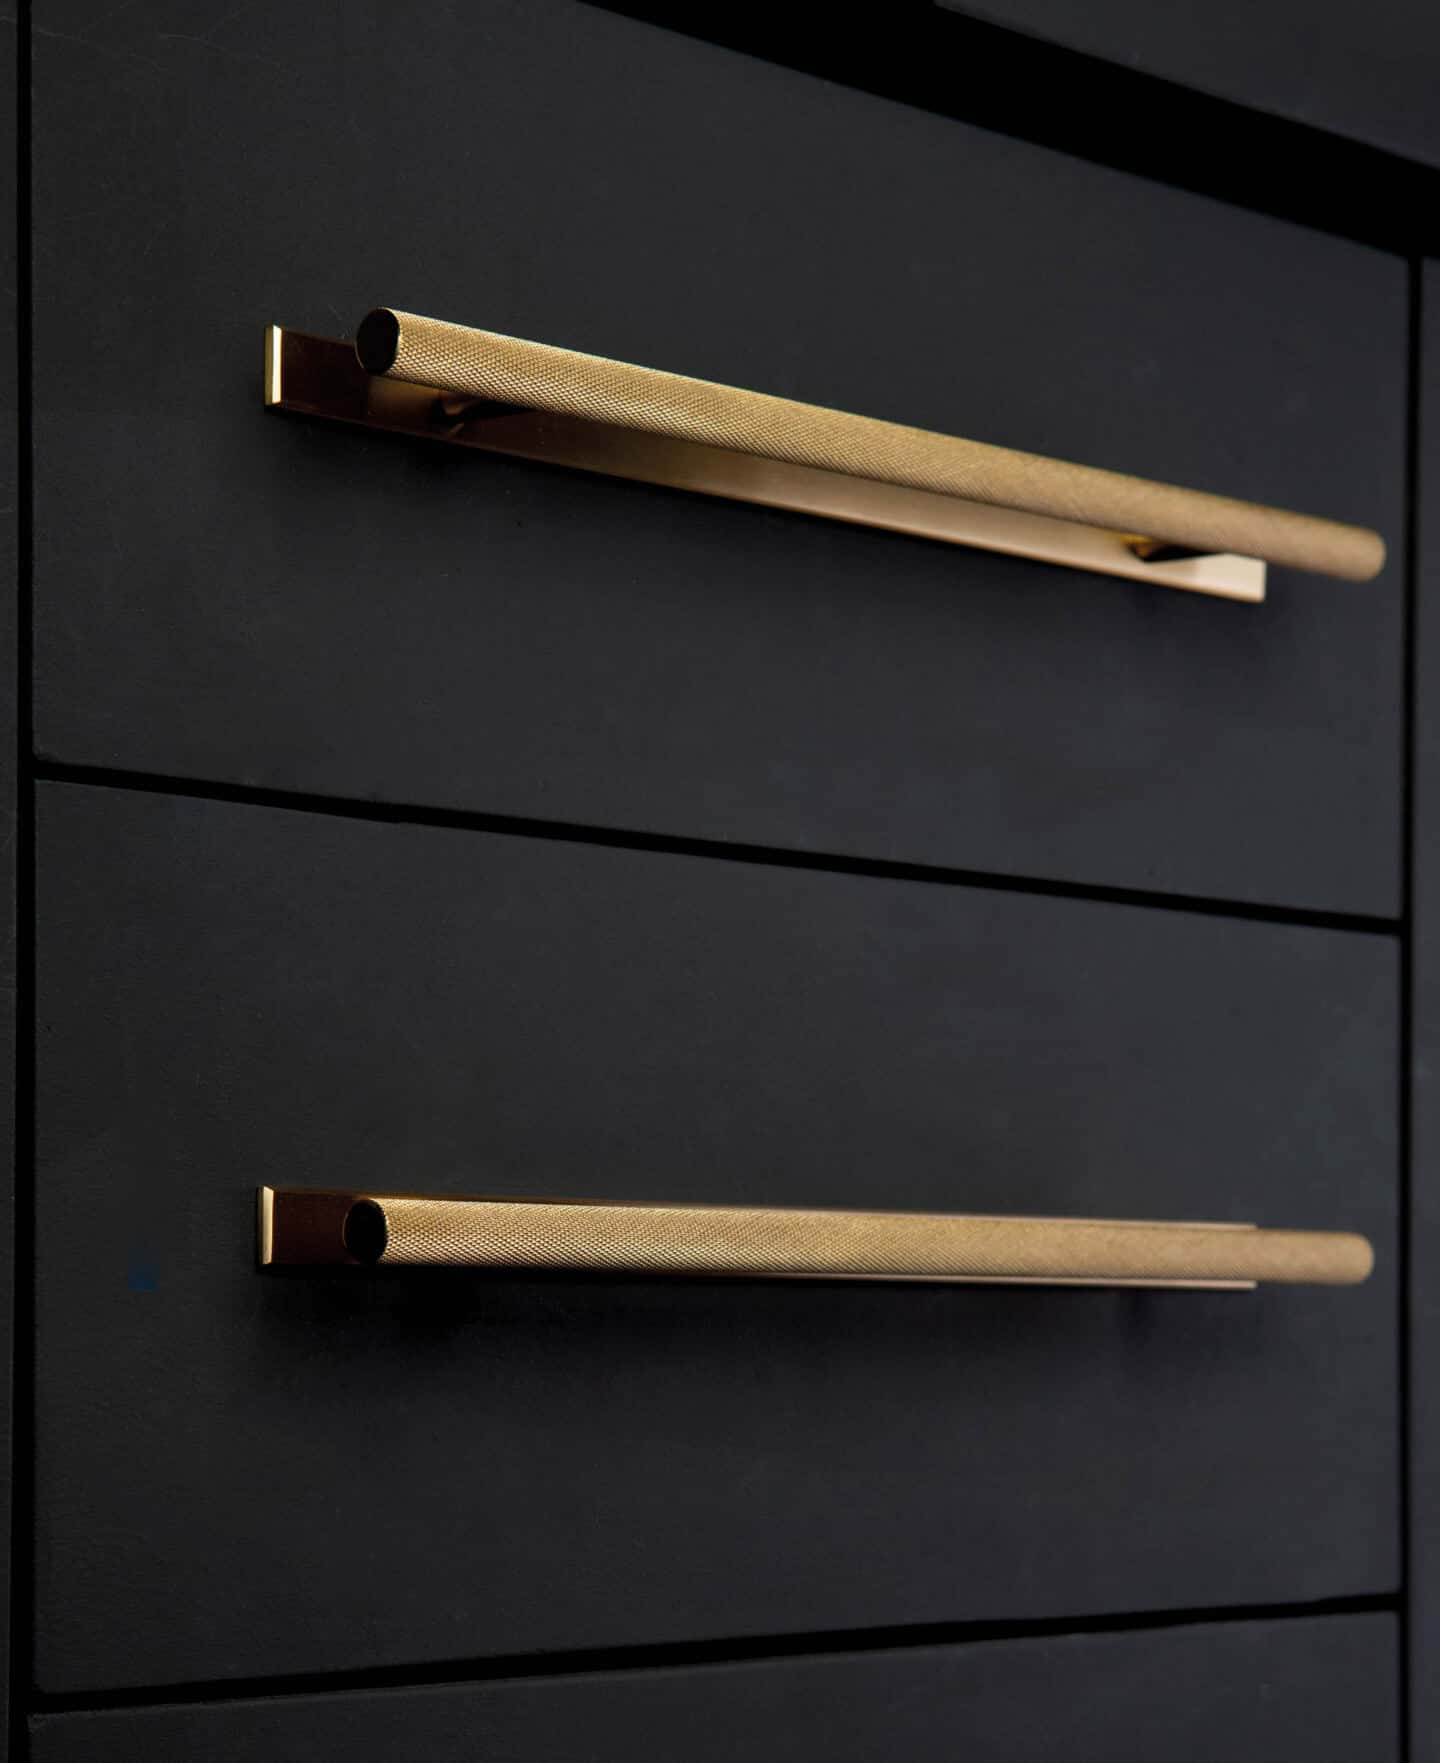 6 Easy Ways to Spruce Up Your Kitchen on a Budget. Replace the hardware on the cabinets. Skyscraper Knurled Handle in Raw Brass by Dowsing & Reynolds